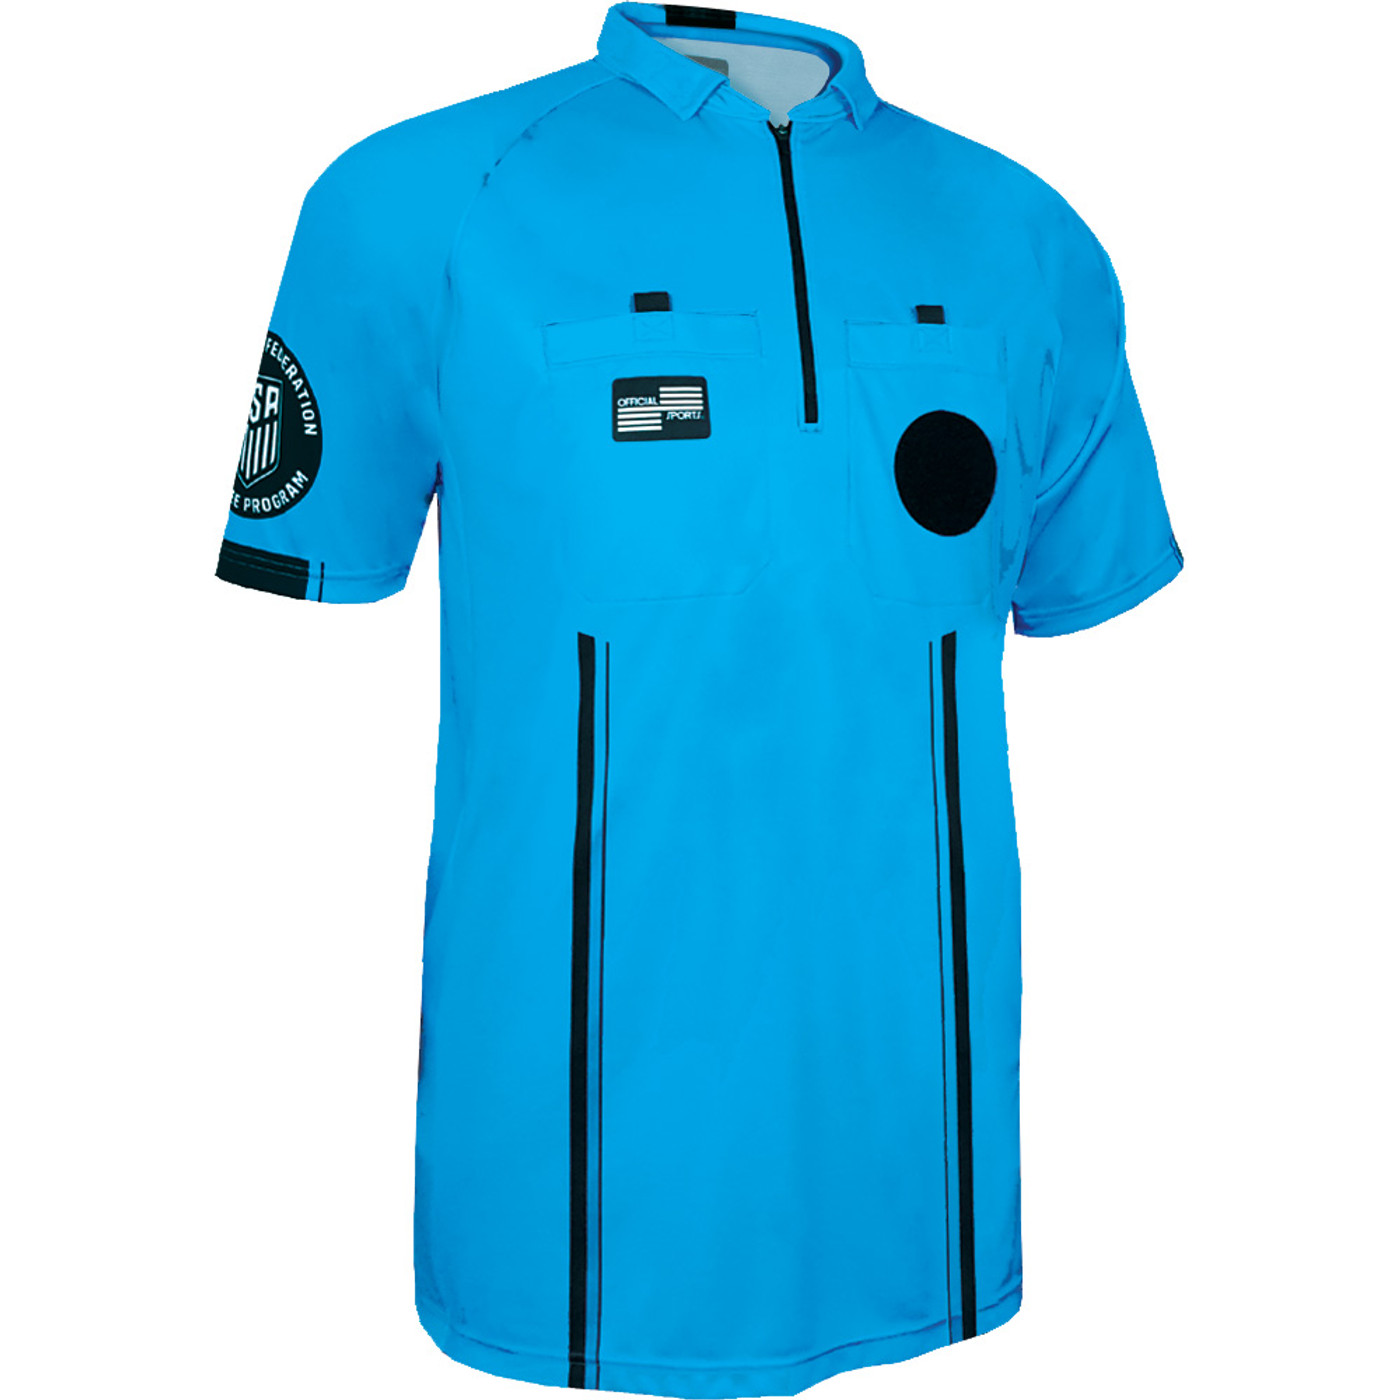 9900BLU Men's Blue Pro Short Sleeve Kit